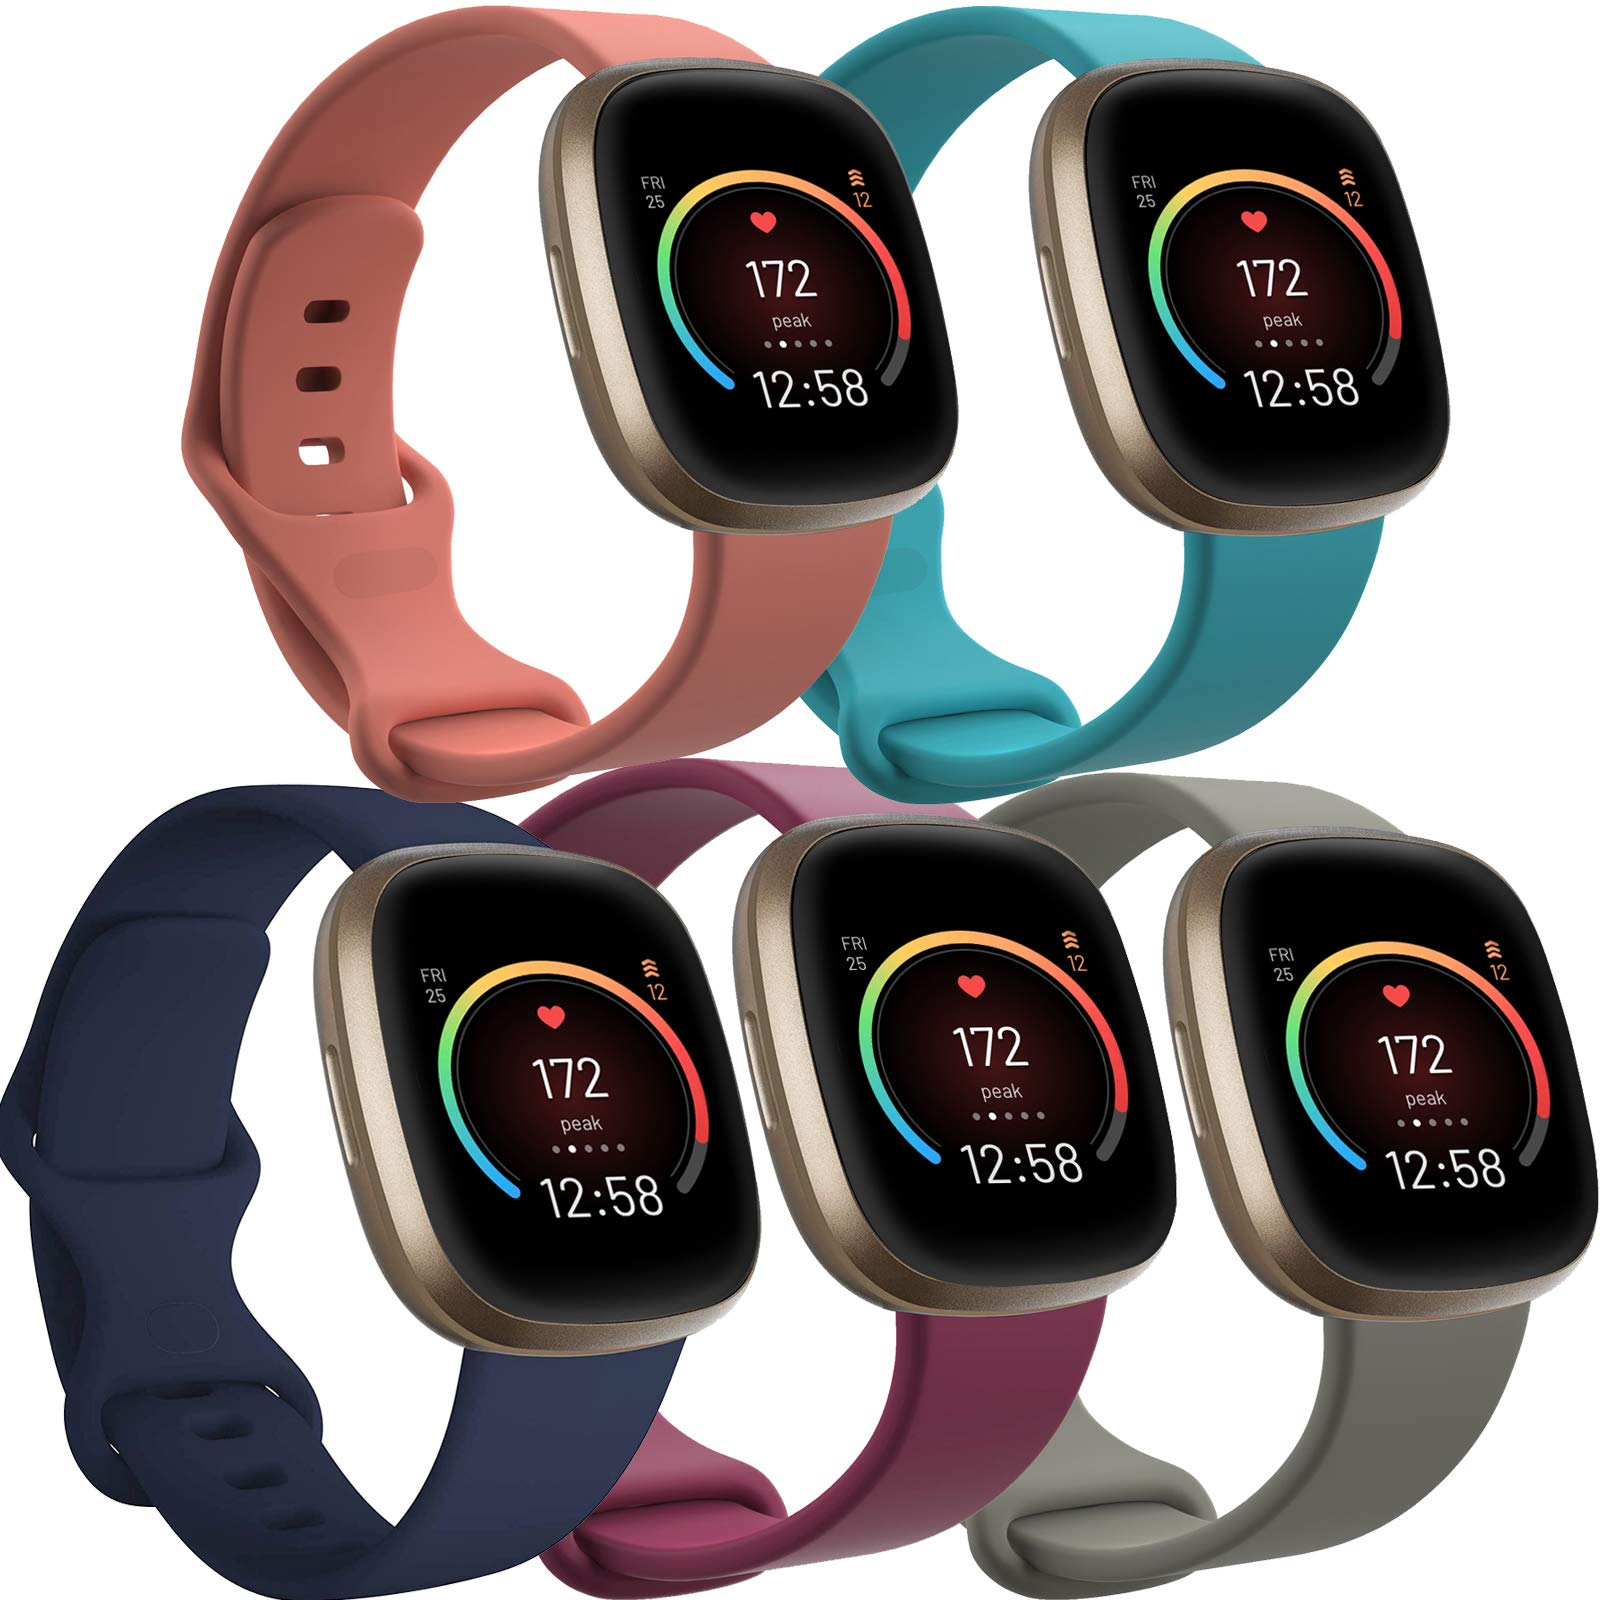 Silicone bands for fitbit versa 3 and fitbit sense smartwatch